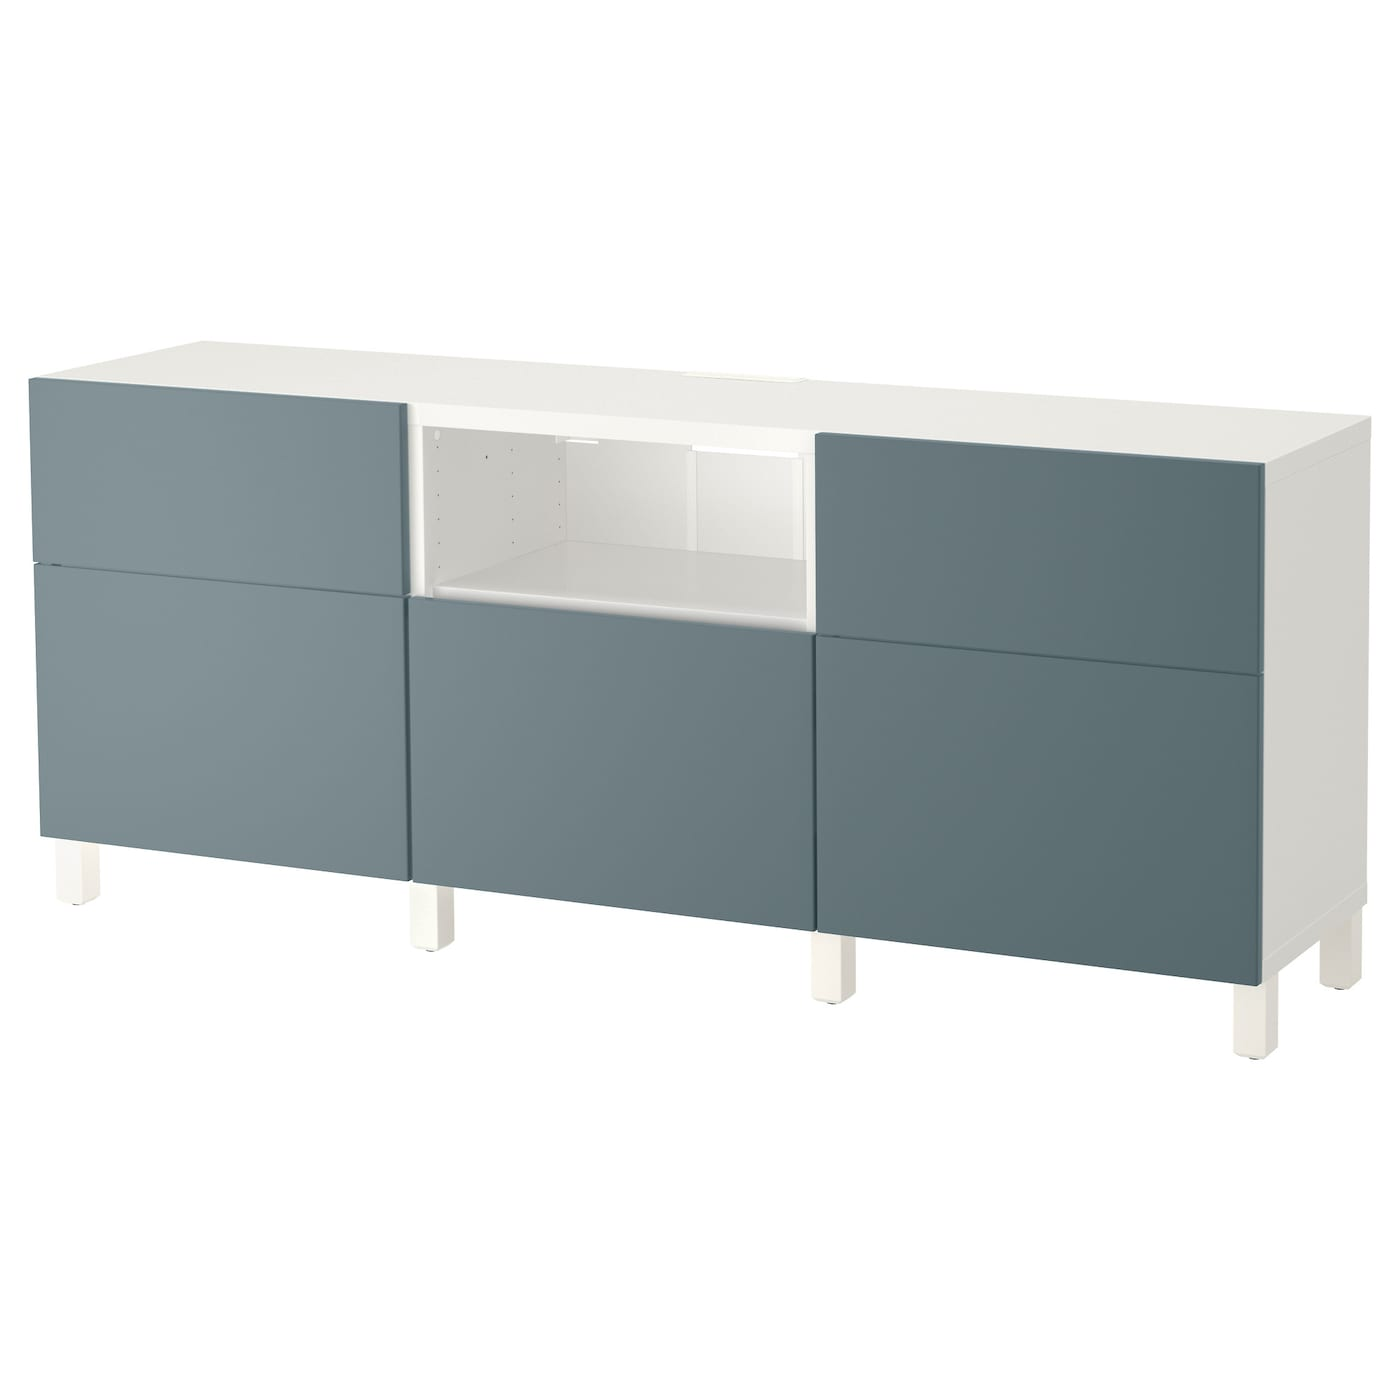 best banc tv blanc valviken gris turquoise 180x40x74 cm ikea. Black Bedroom Furniture Sets. Home Design Ideas